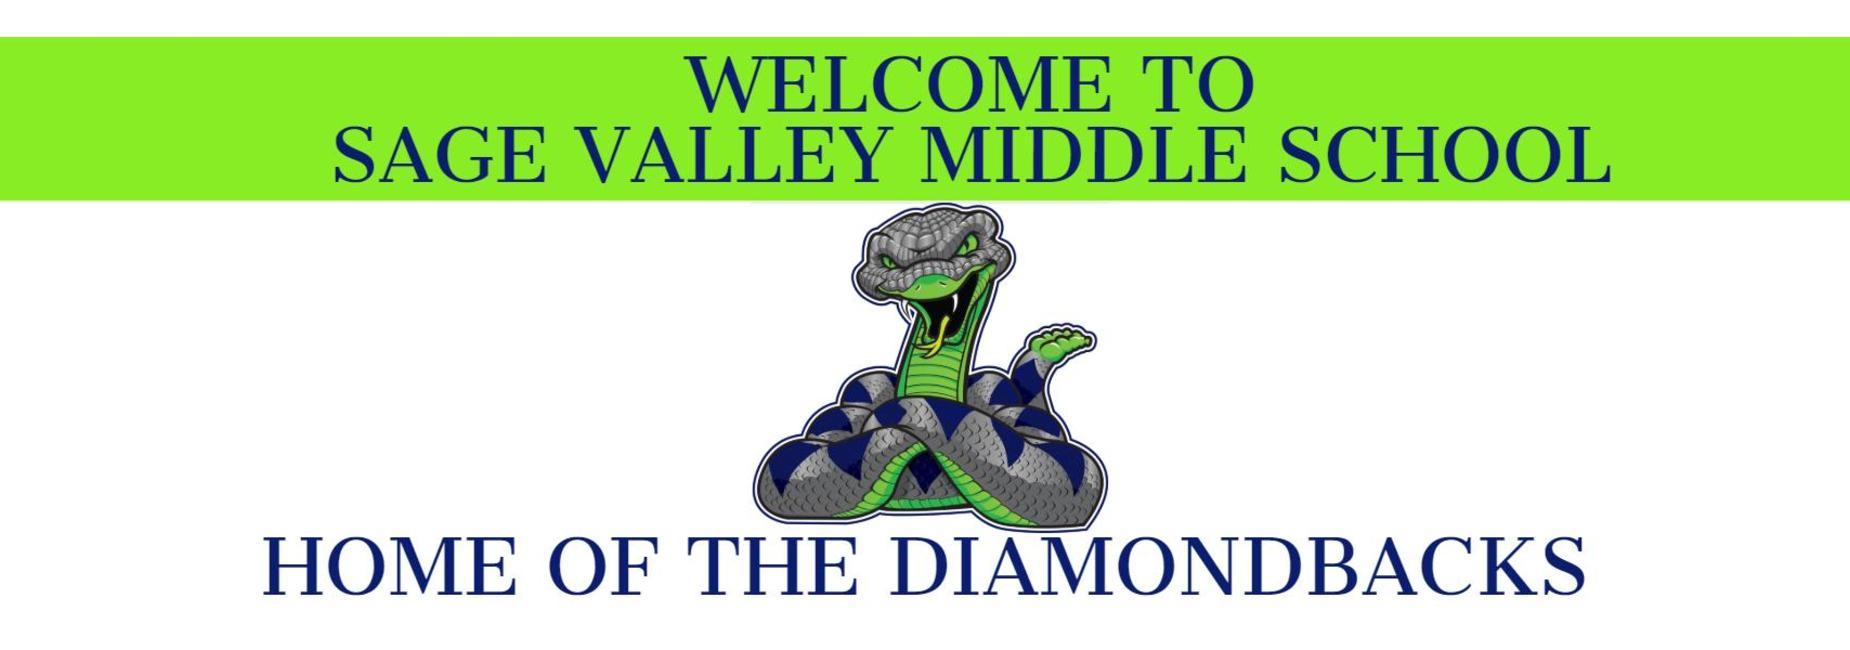 Welcome to Sage Valley